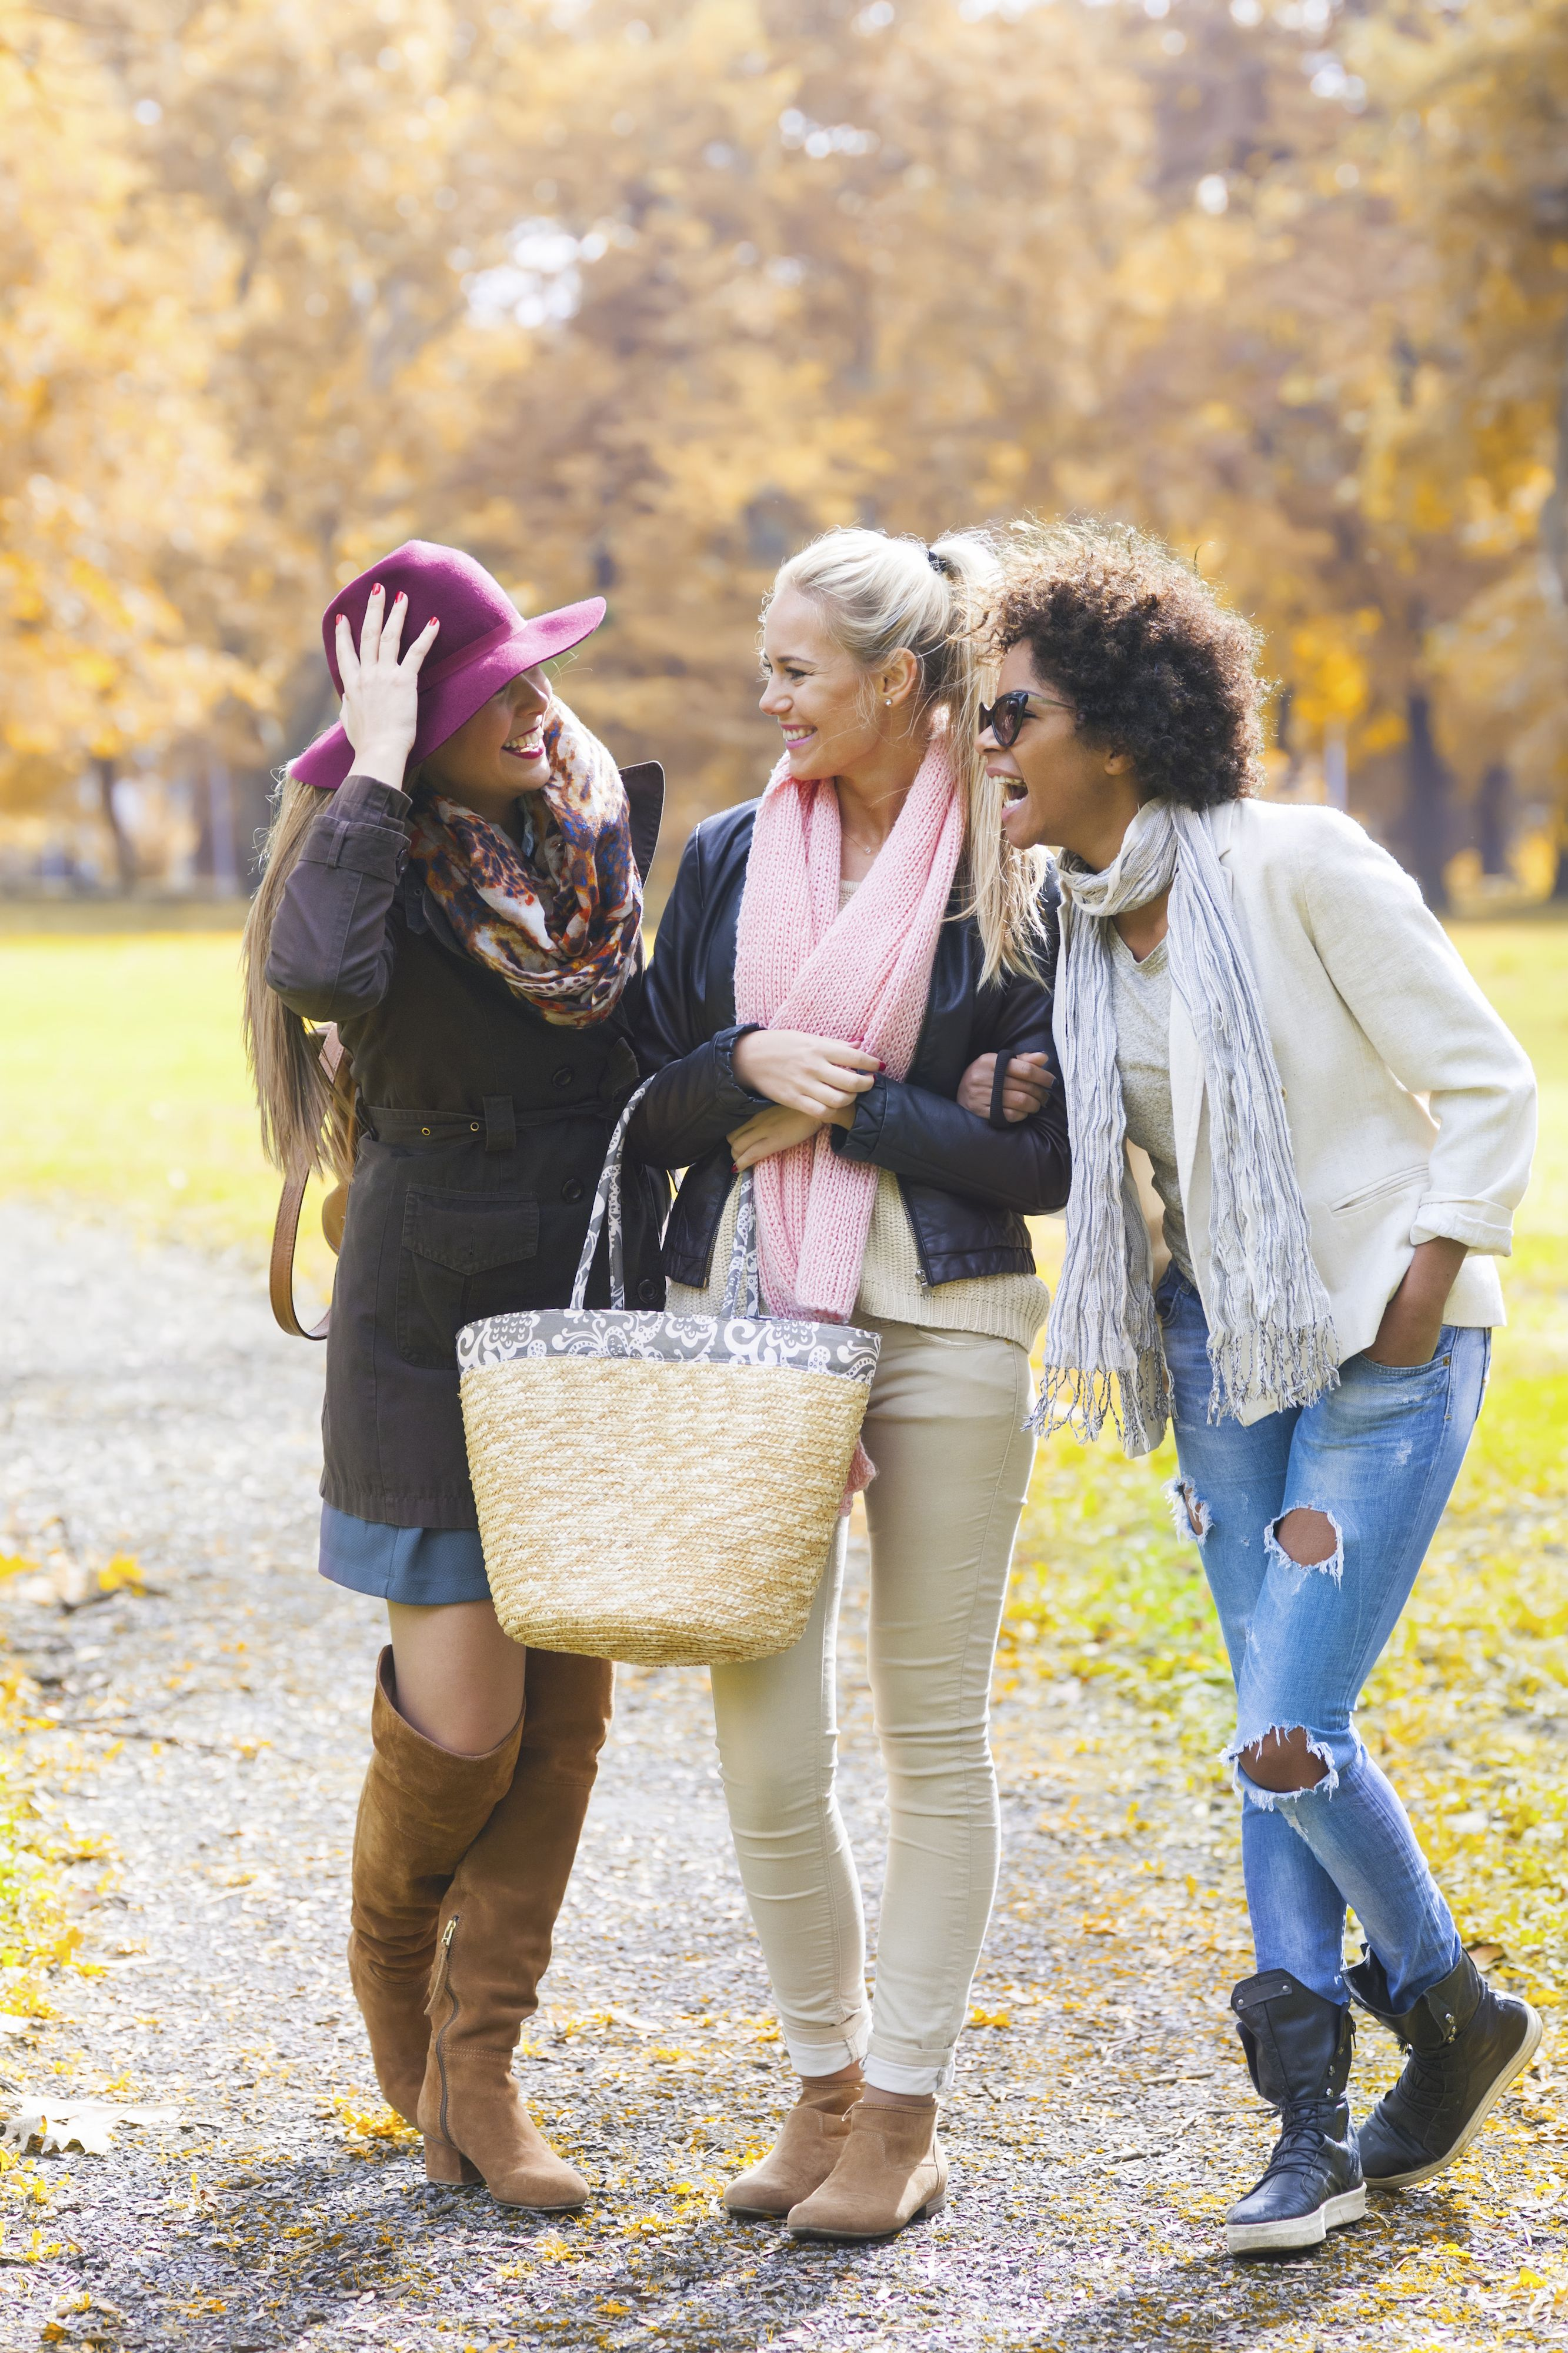 20 Things True Friends Don't Do - Signs of an Unhealthy Friendship